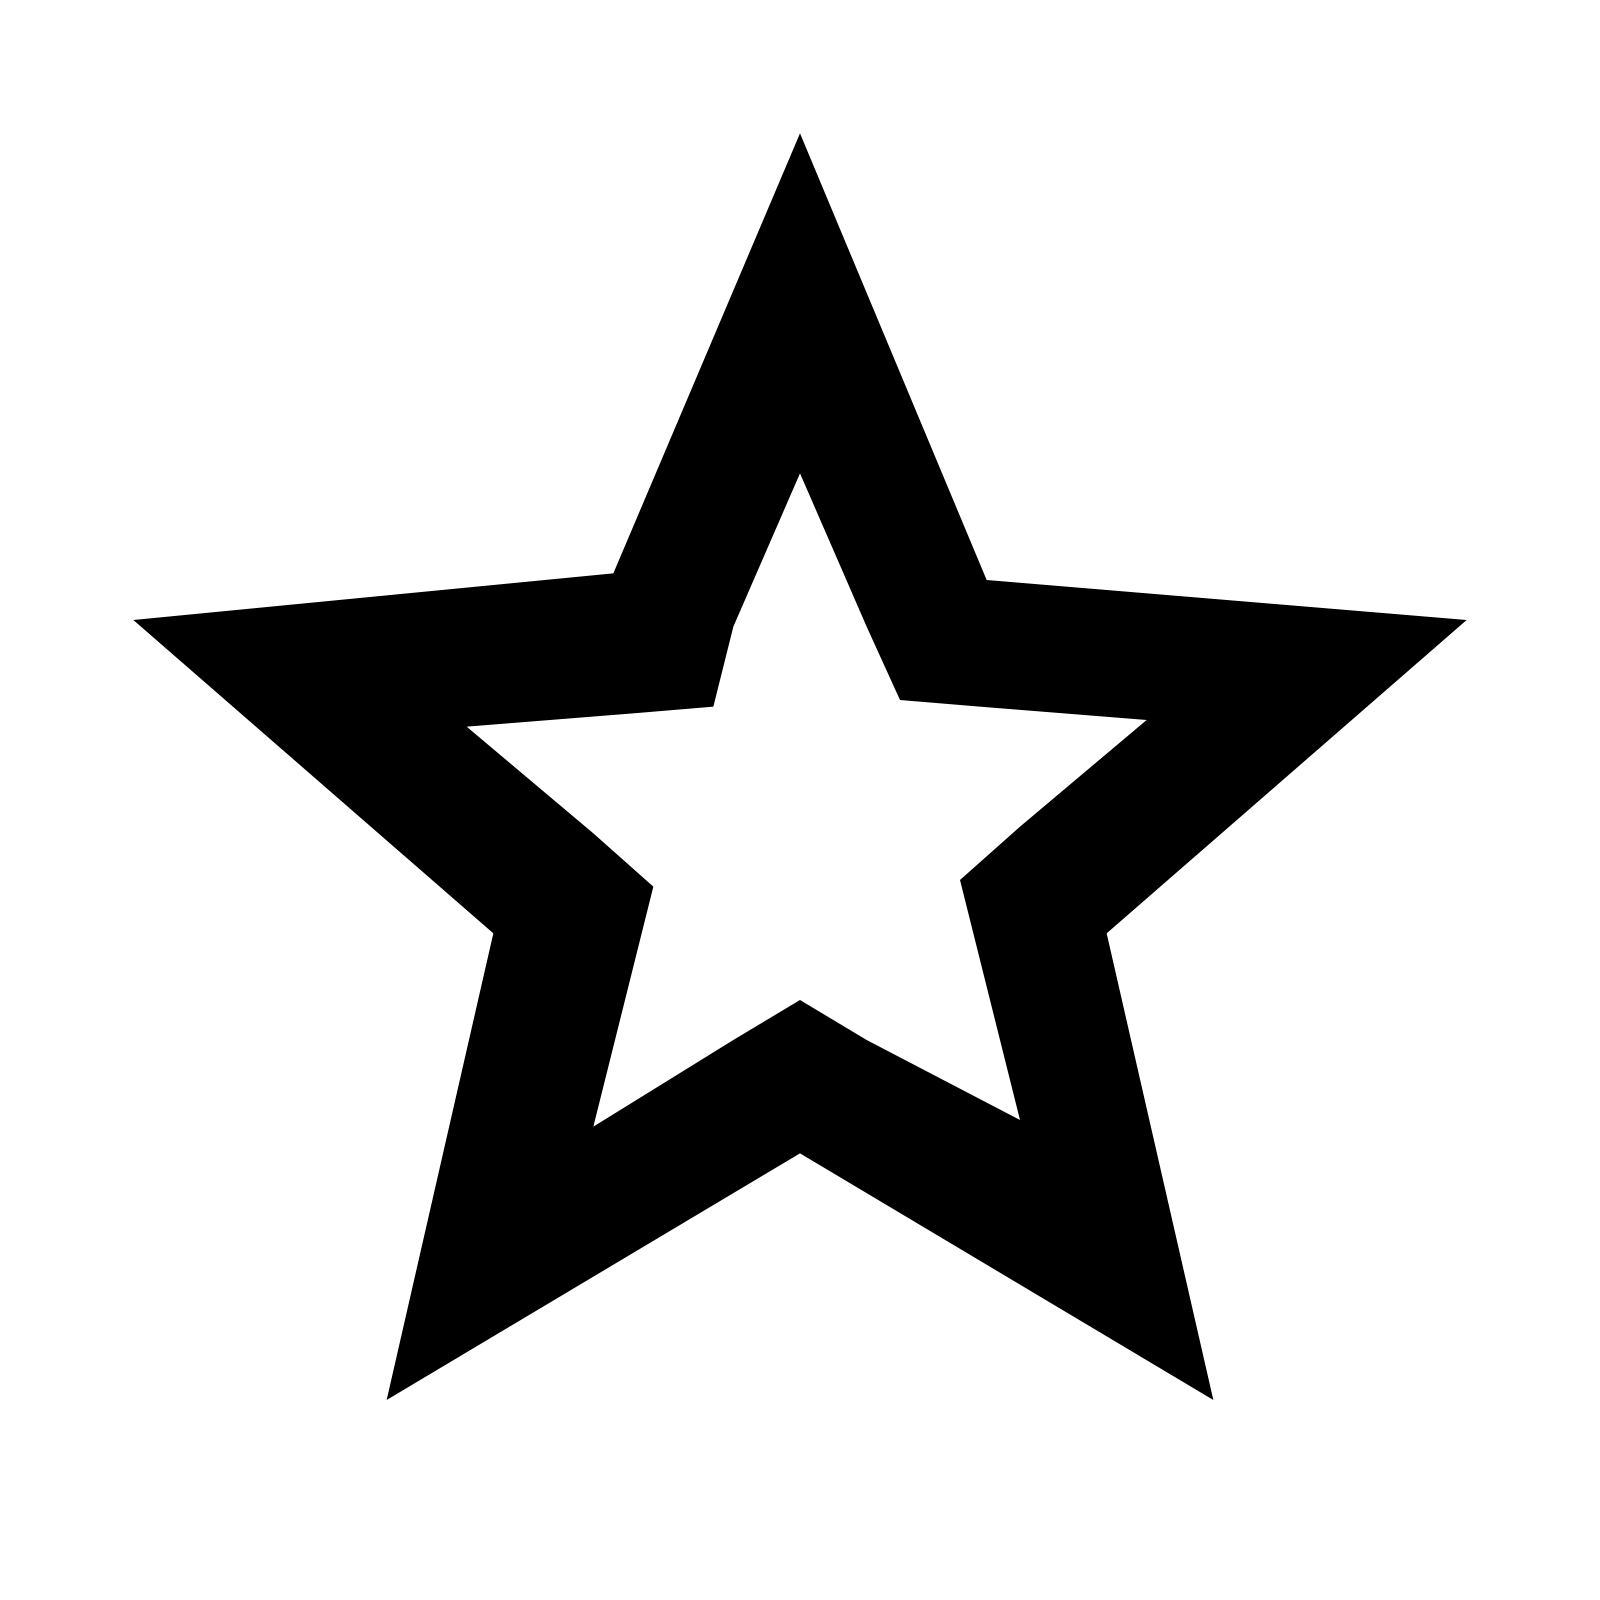 Black star clipart png graphic black and white library Black Star PNG Image - PurePNG | Free transparent CC0 PNG Image Library graphic black and white library